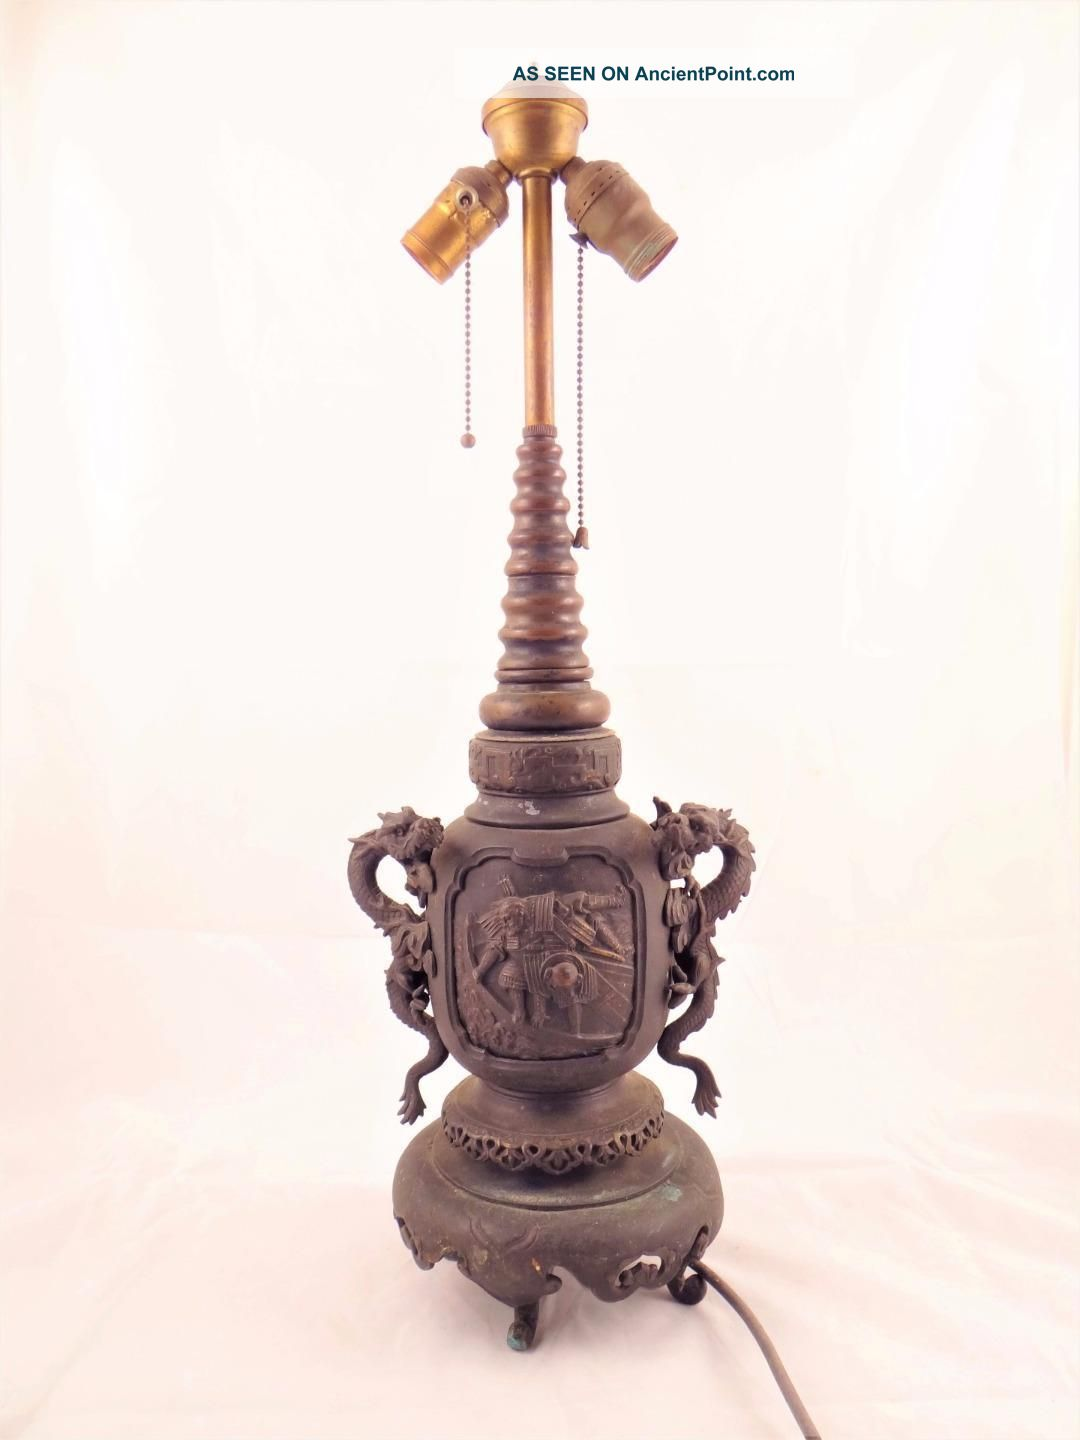 Antique Japanese Cast Metal Figural Lamp W/ Double Dragon Handles Lamps photo